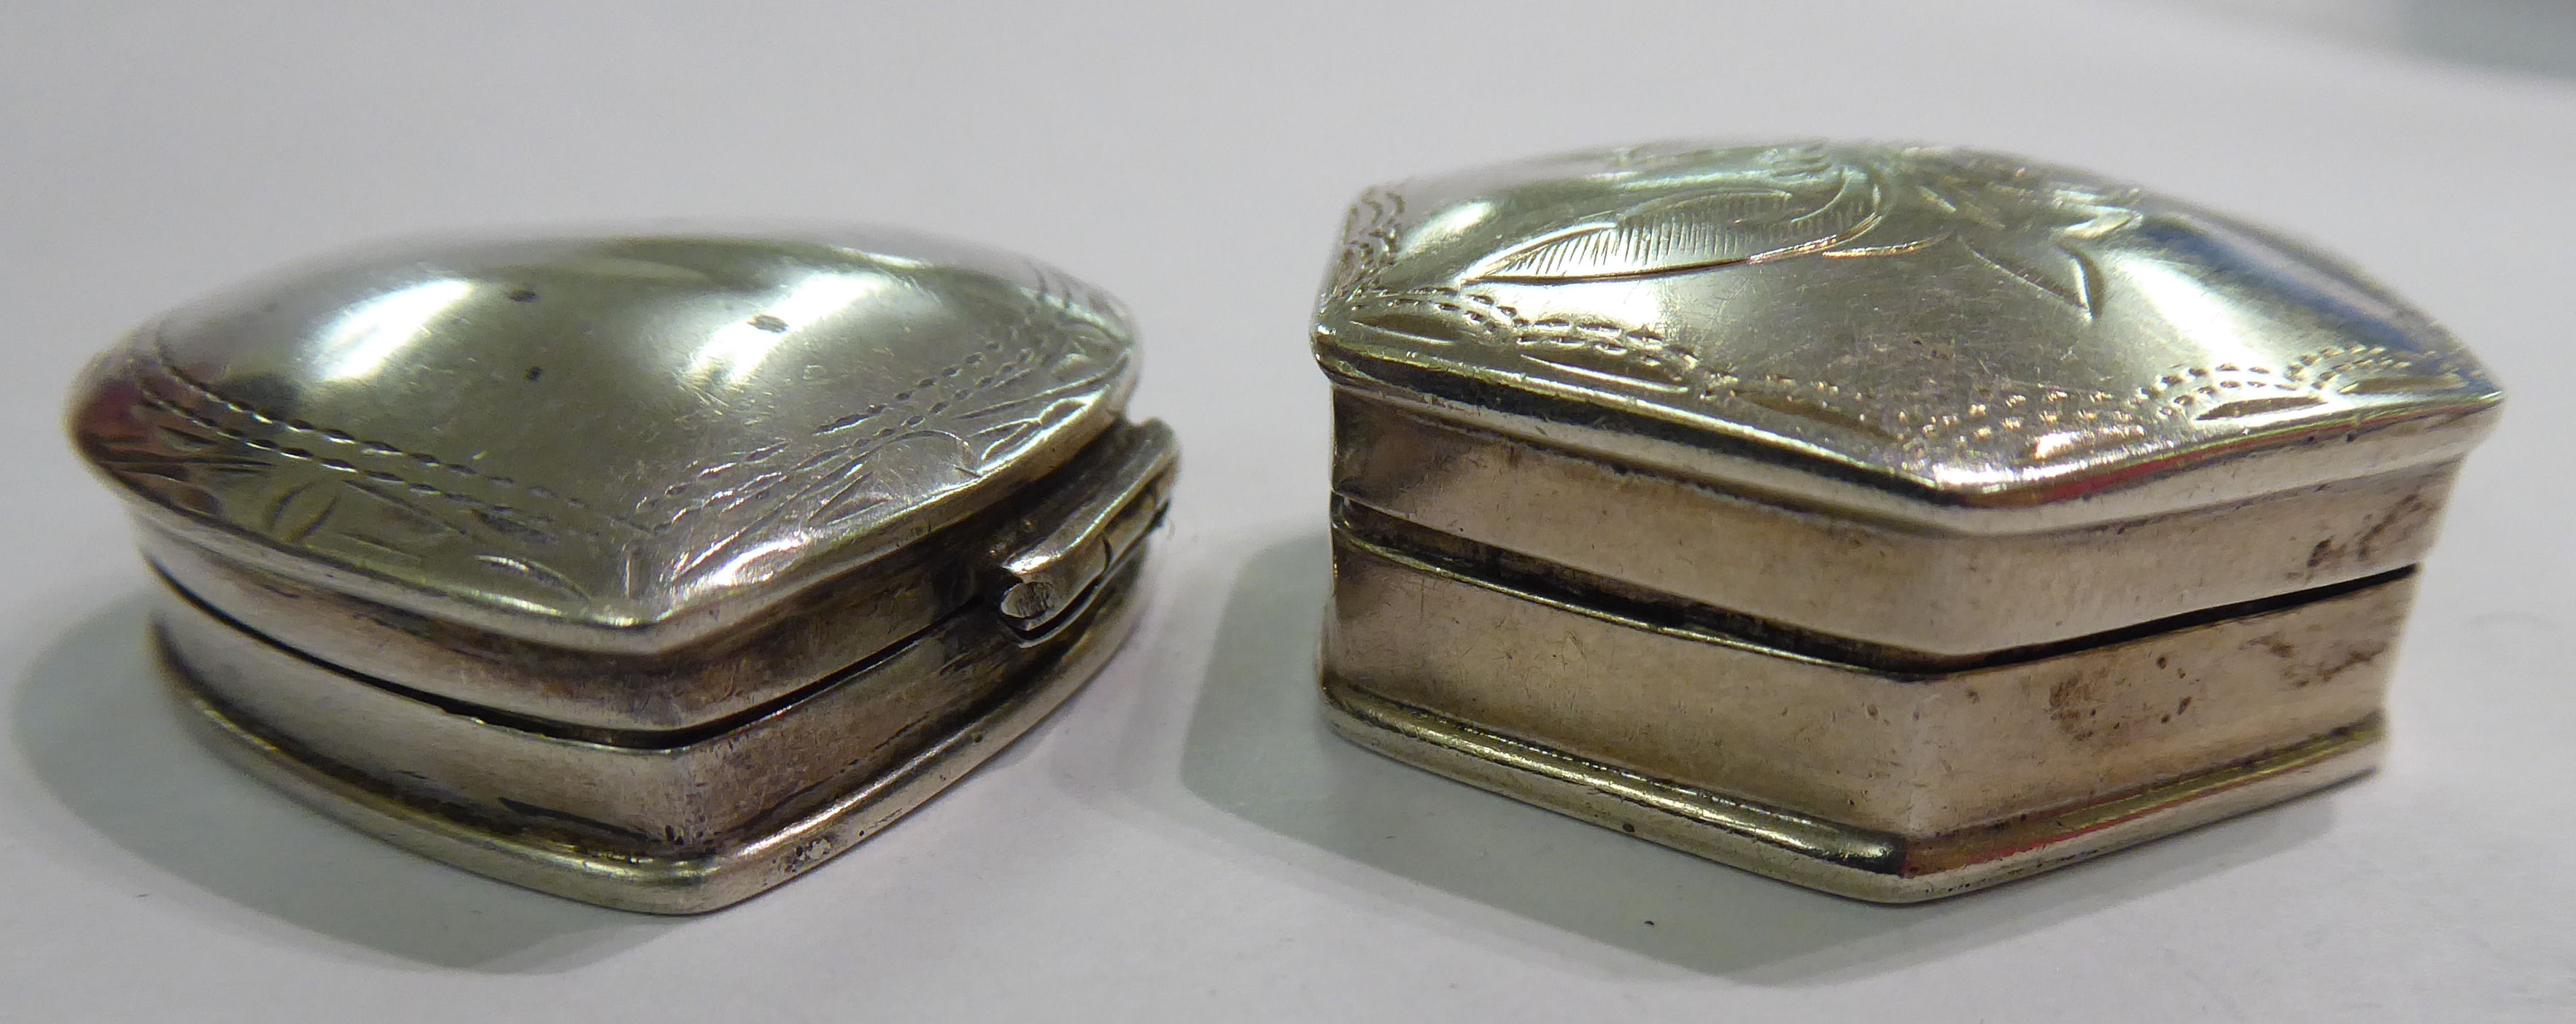 Lot 84 - Two silver coloured metal trinket boxes both stamped 925 11